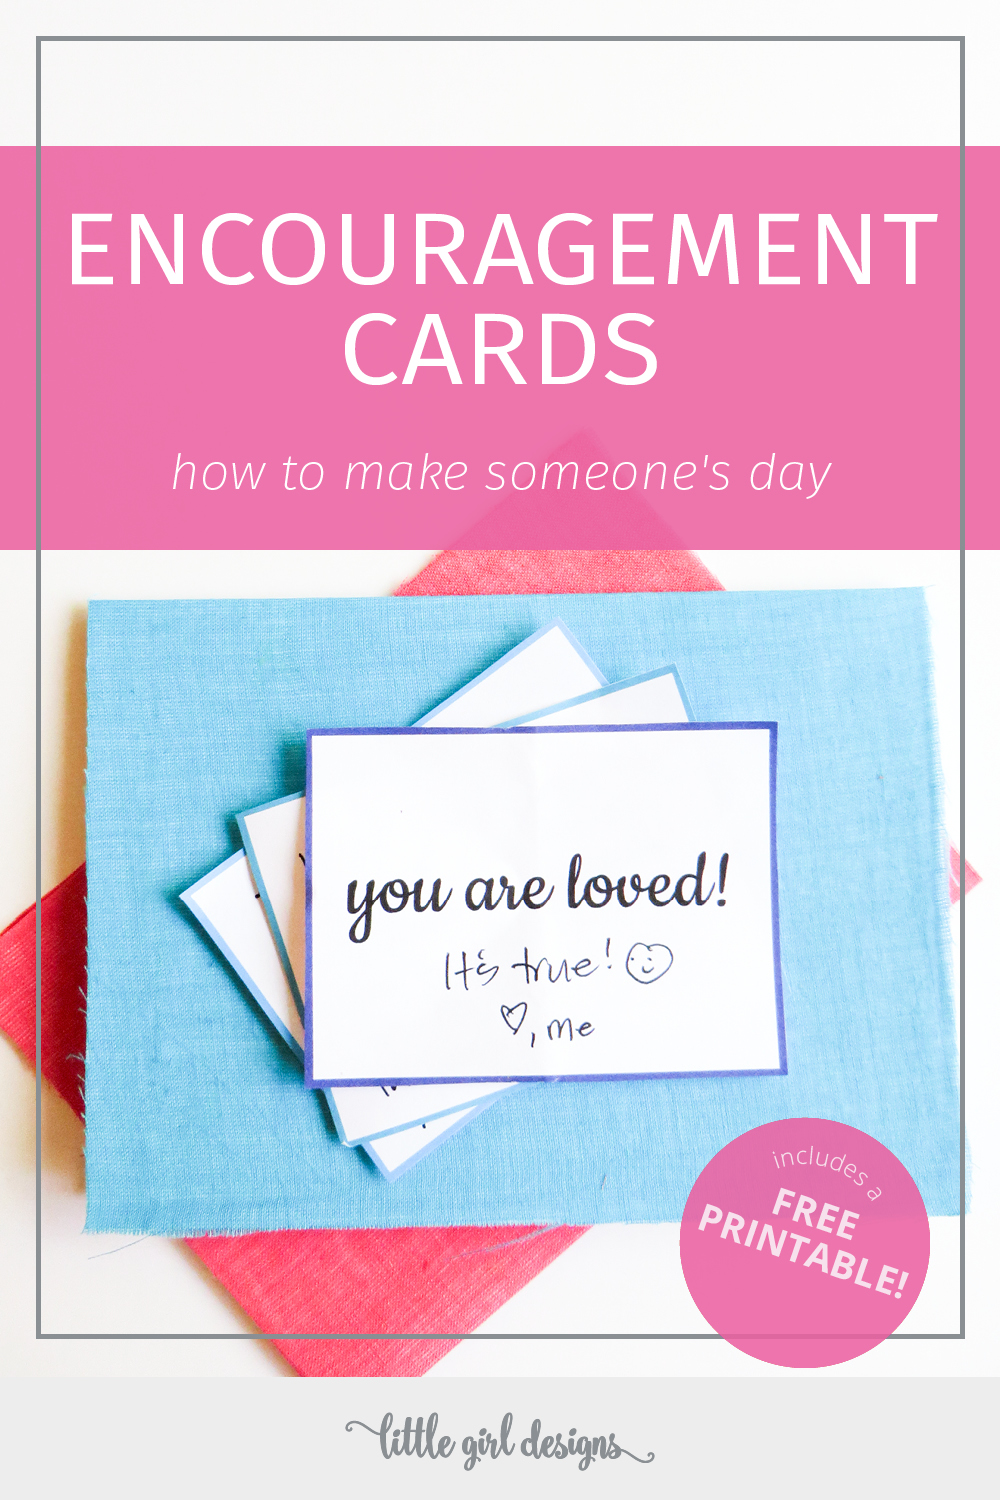 picture regarding Printable Encouragement Cards named Encouragement Playing cards Moreover a No cost Printable Jennie Moraitis